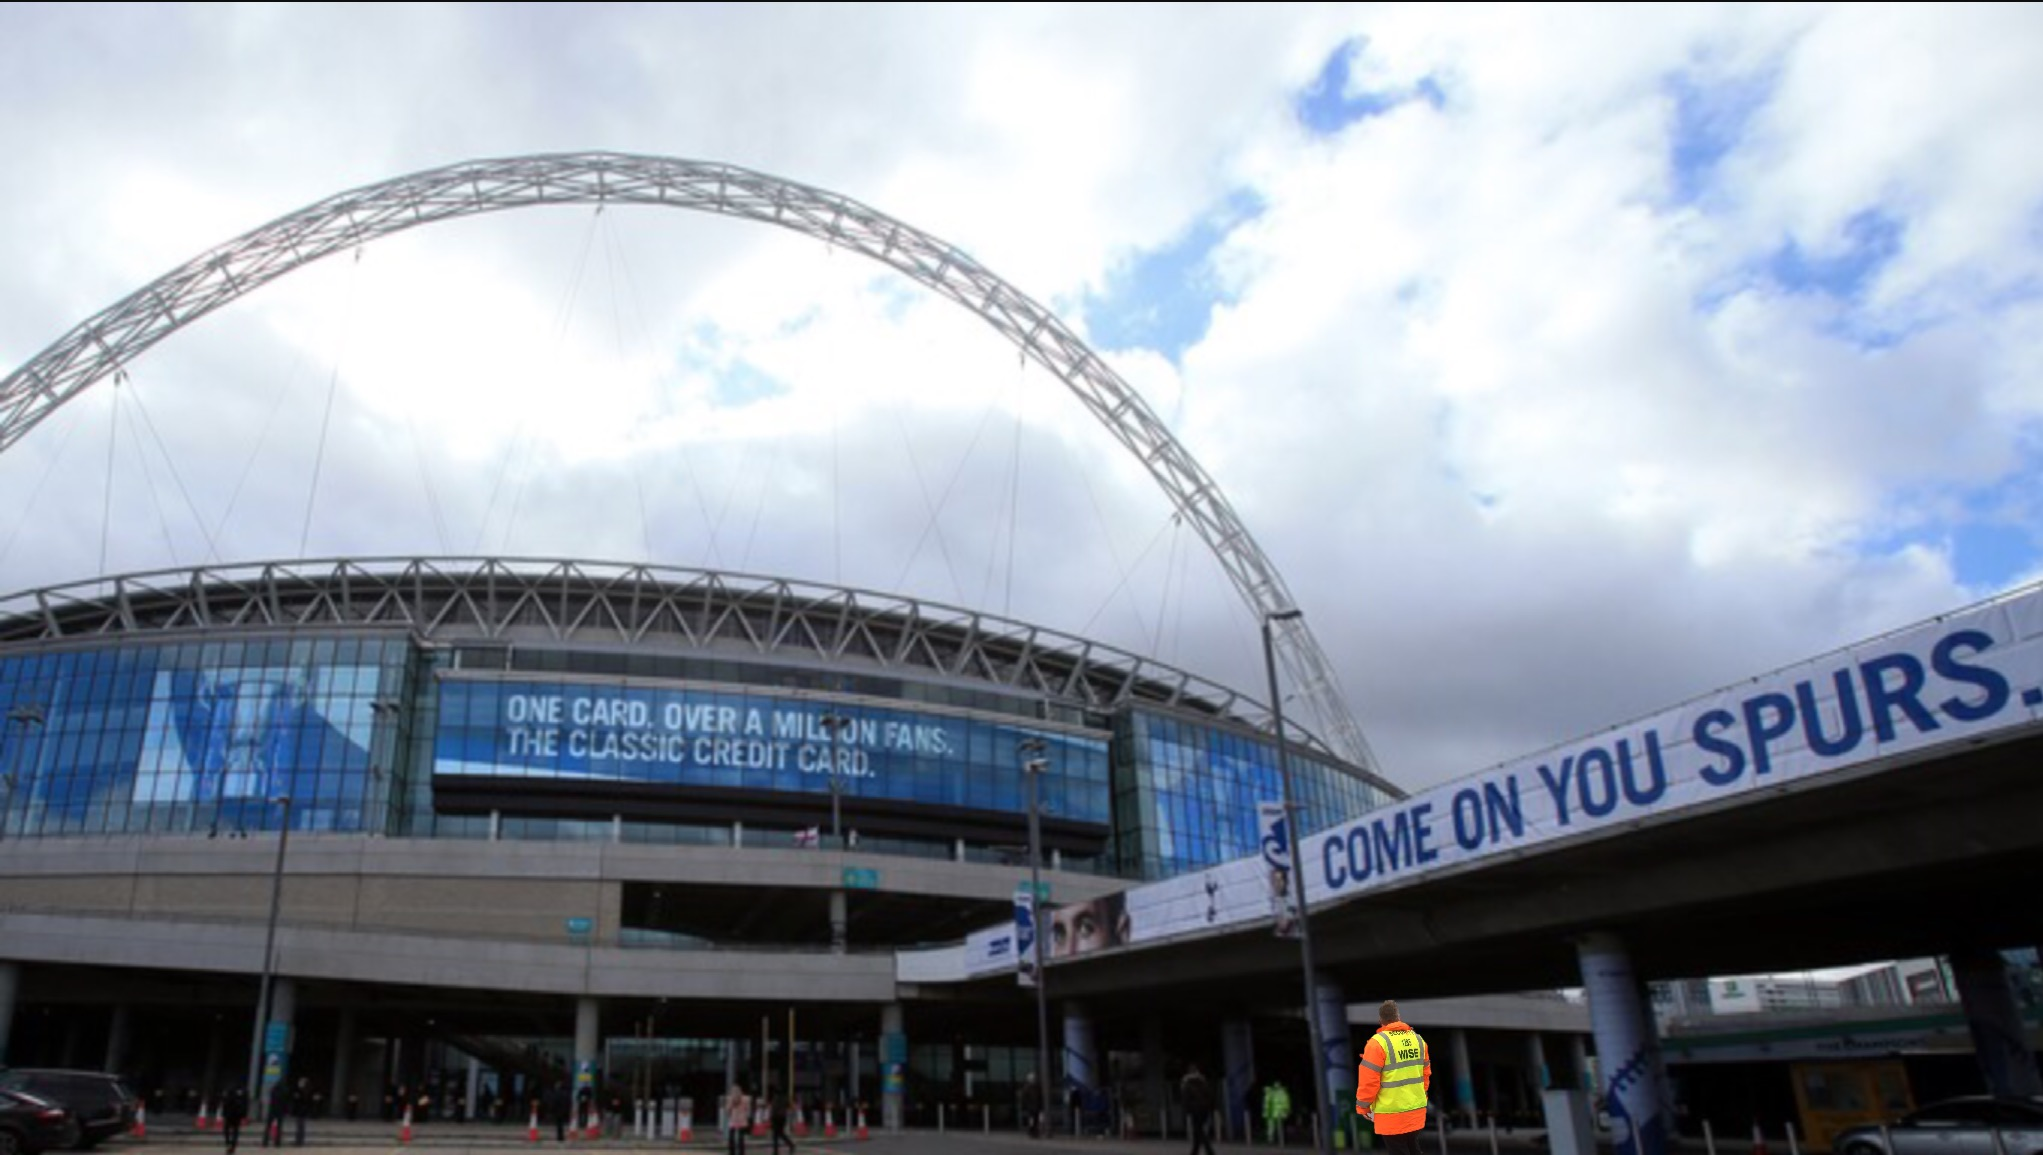 case study of the new wembley stadium management essay First national bank stadium or simply fnb stadium, also known as soccer city  and the calabash, is a stadium located in nasrec, bordering the soweto area of  johannesburg, south africa the venue is managed by stadium management  south africa (smsa) and is  it is located next to the south african football  association headquarters.